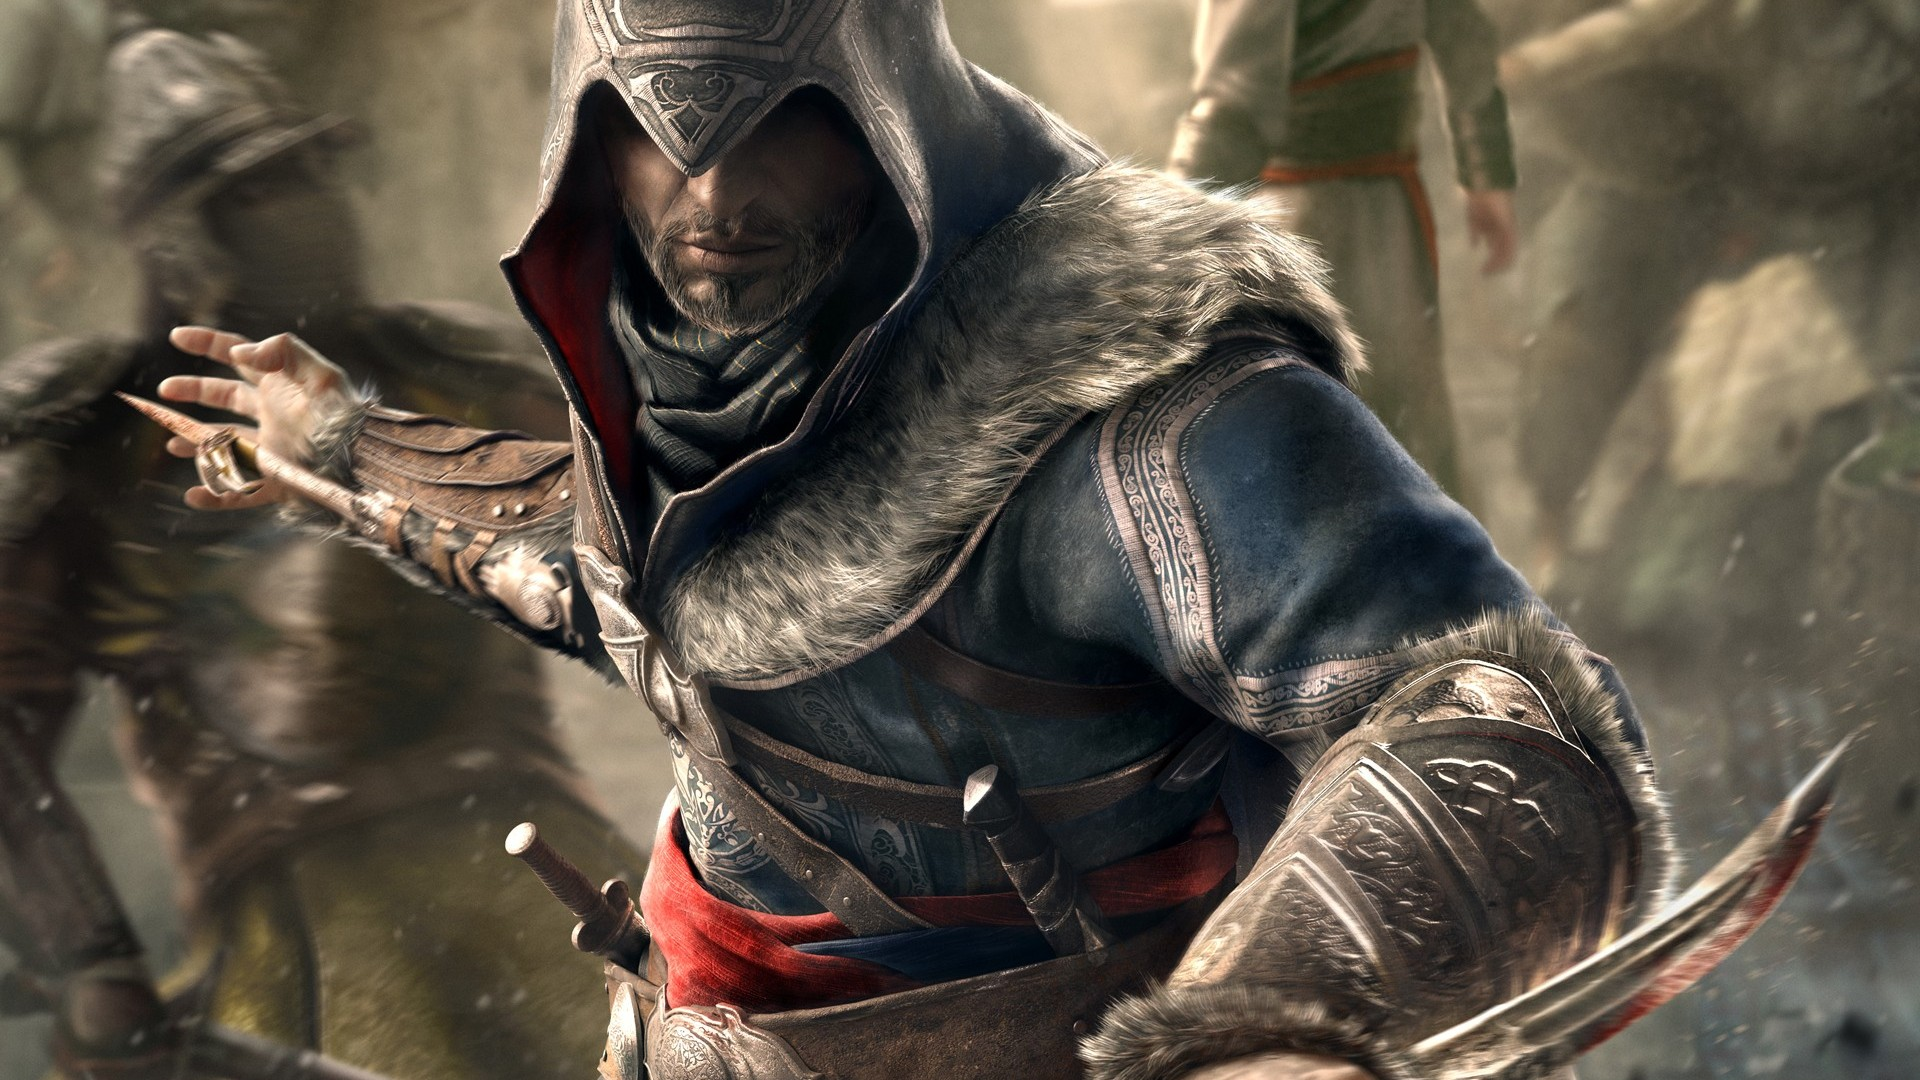 Assassin S Creed Hd Wallpaper Hd Wallpapers